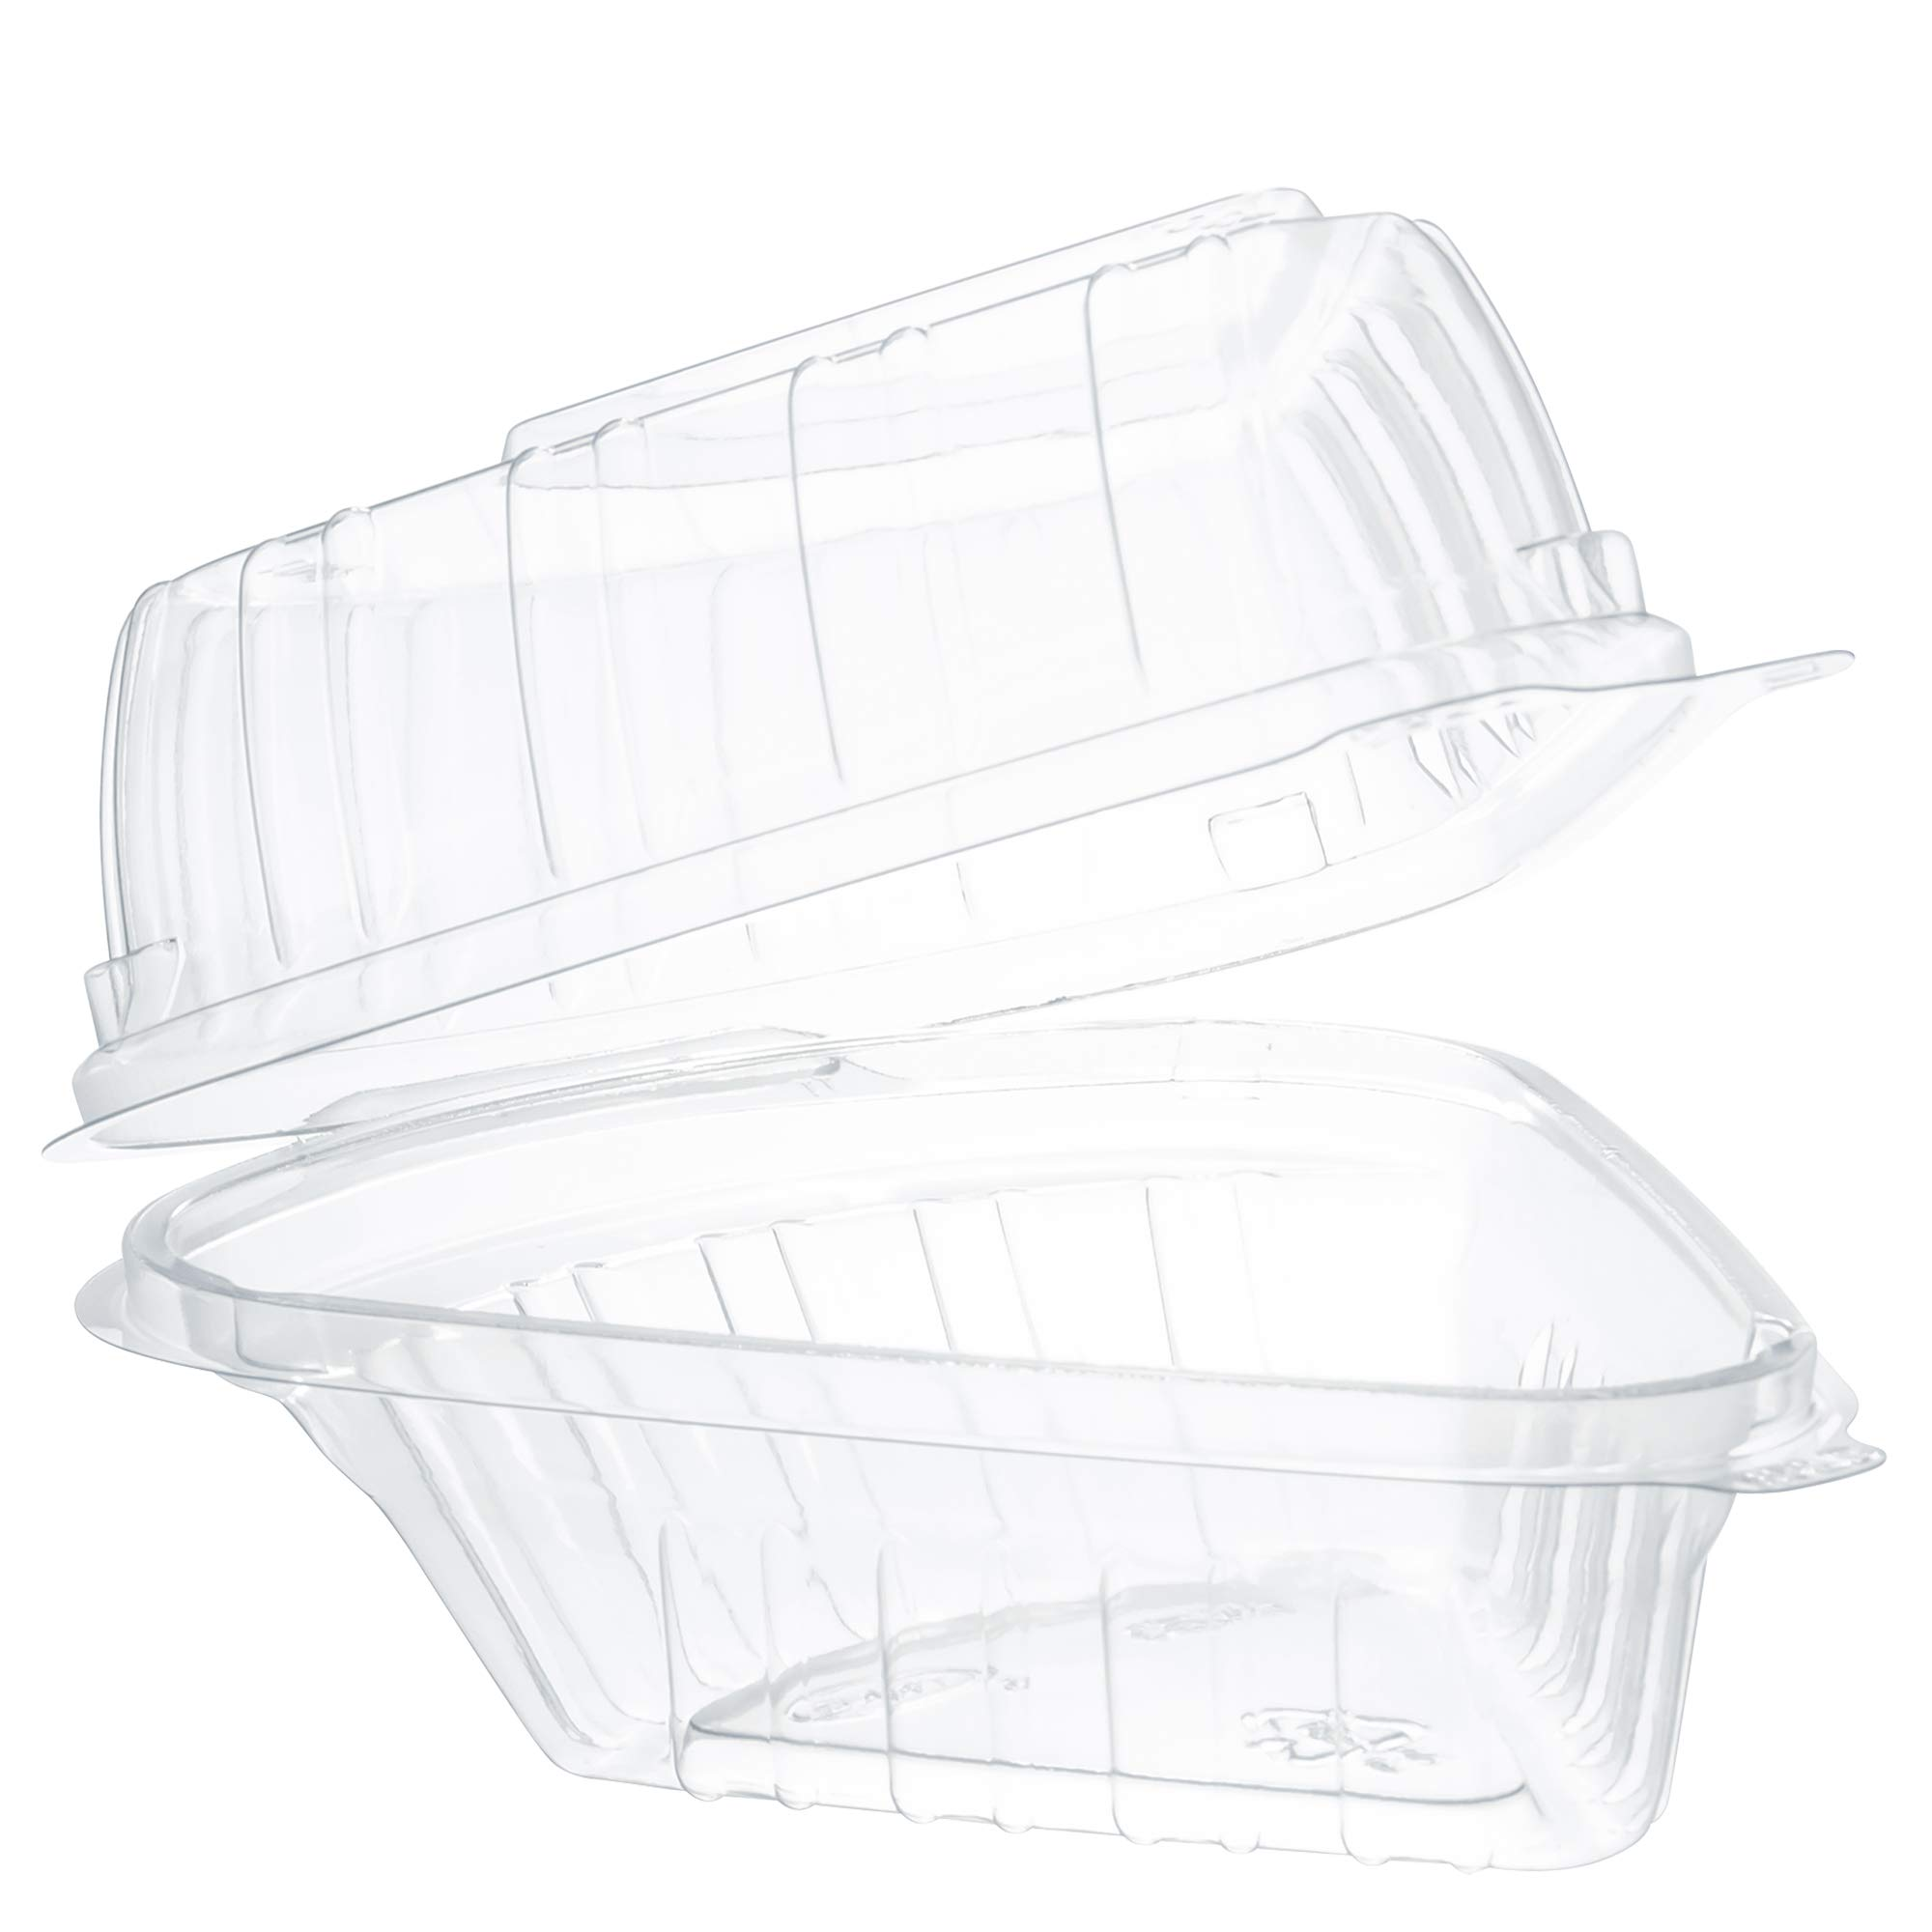 Dart C54HT1 Pie Wedge Clear Hinged Container, 5.6 X 6.1 in (Case of 250) by DART